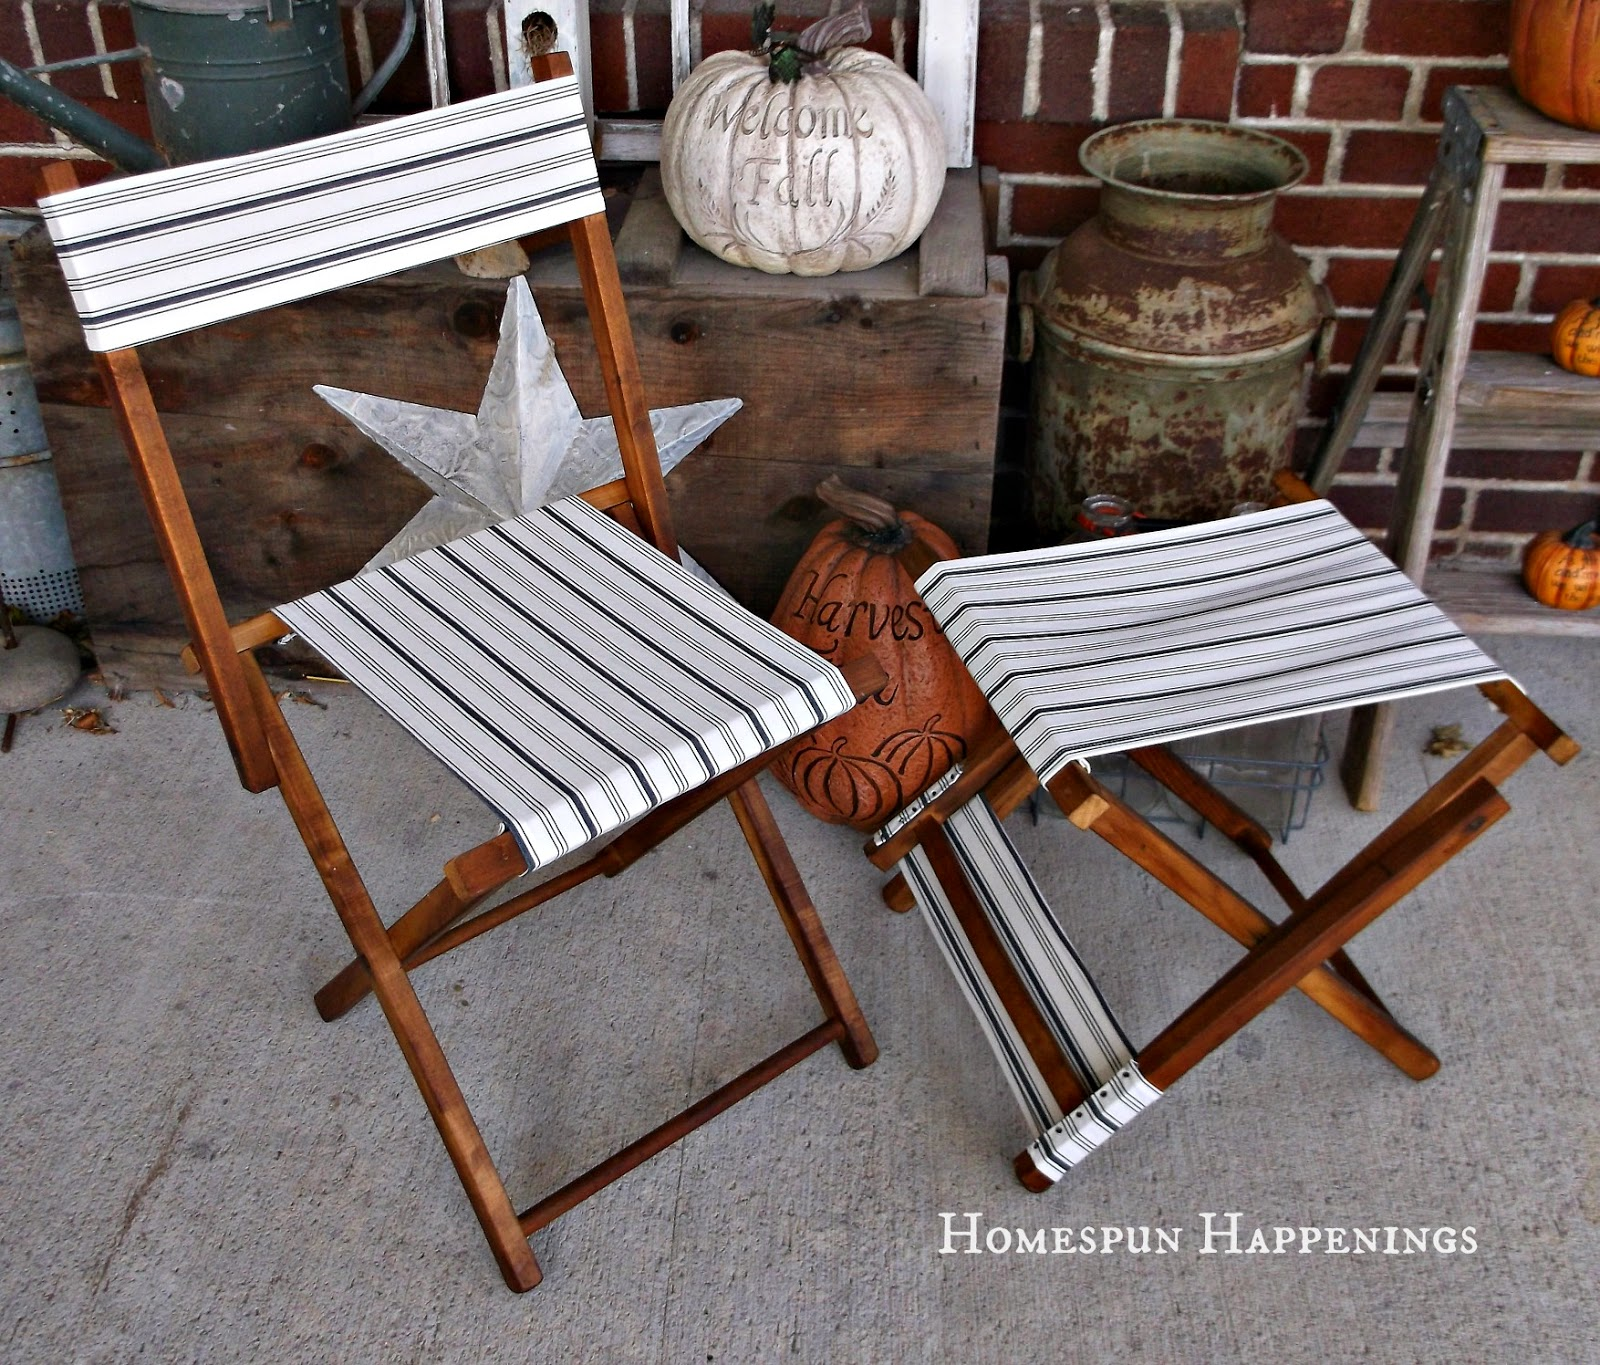 Vintage camping chair - What A Great Pair